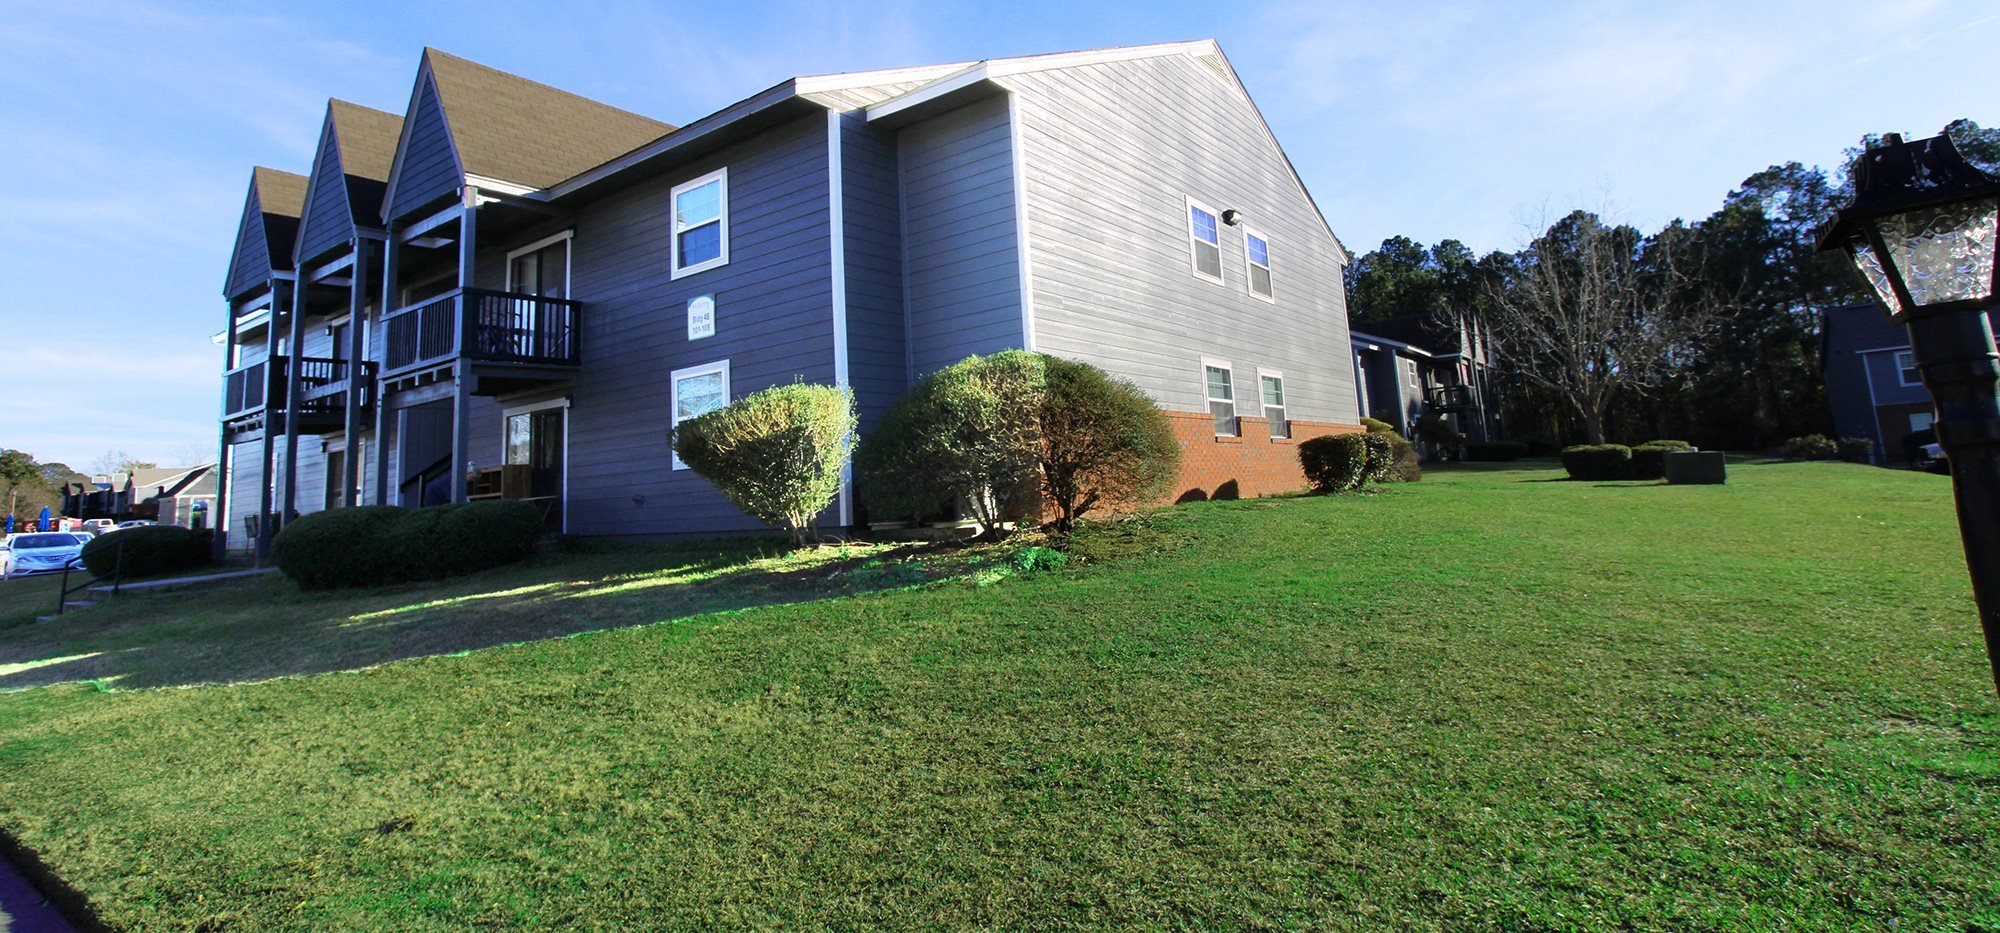 Fieldcrest Apoartments in Dothan Alabama image of exterior apartment building